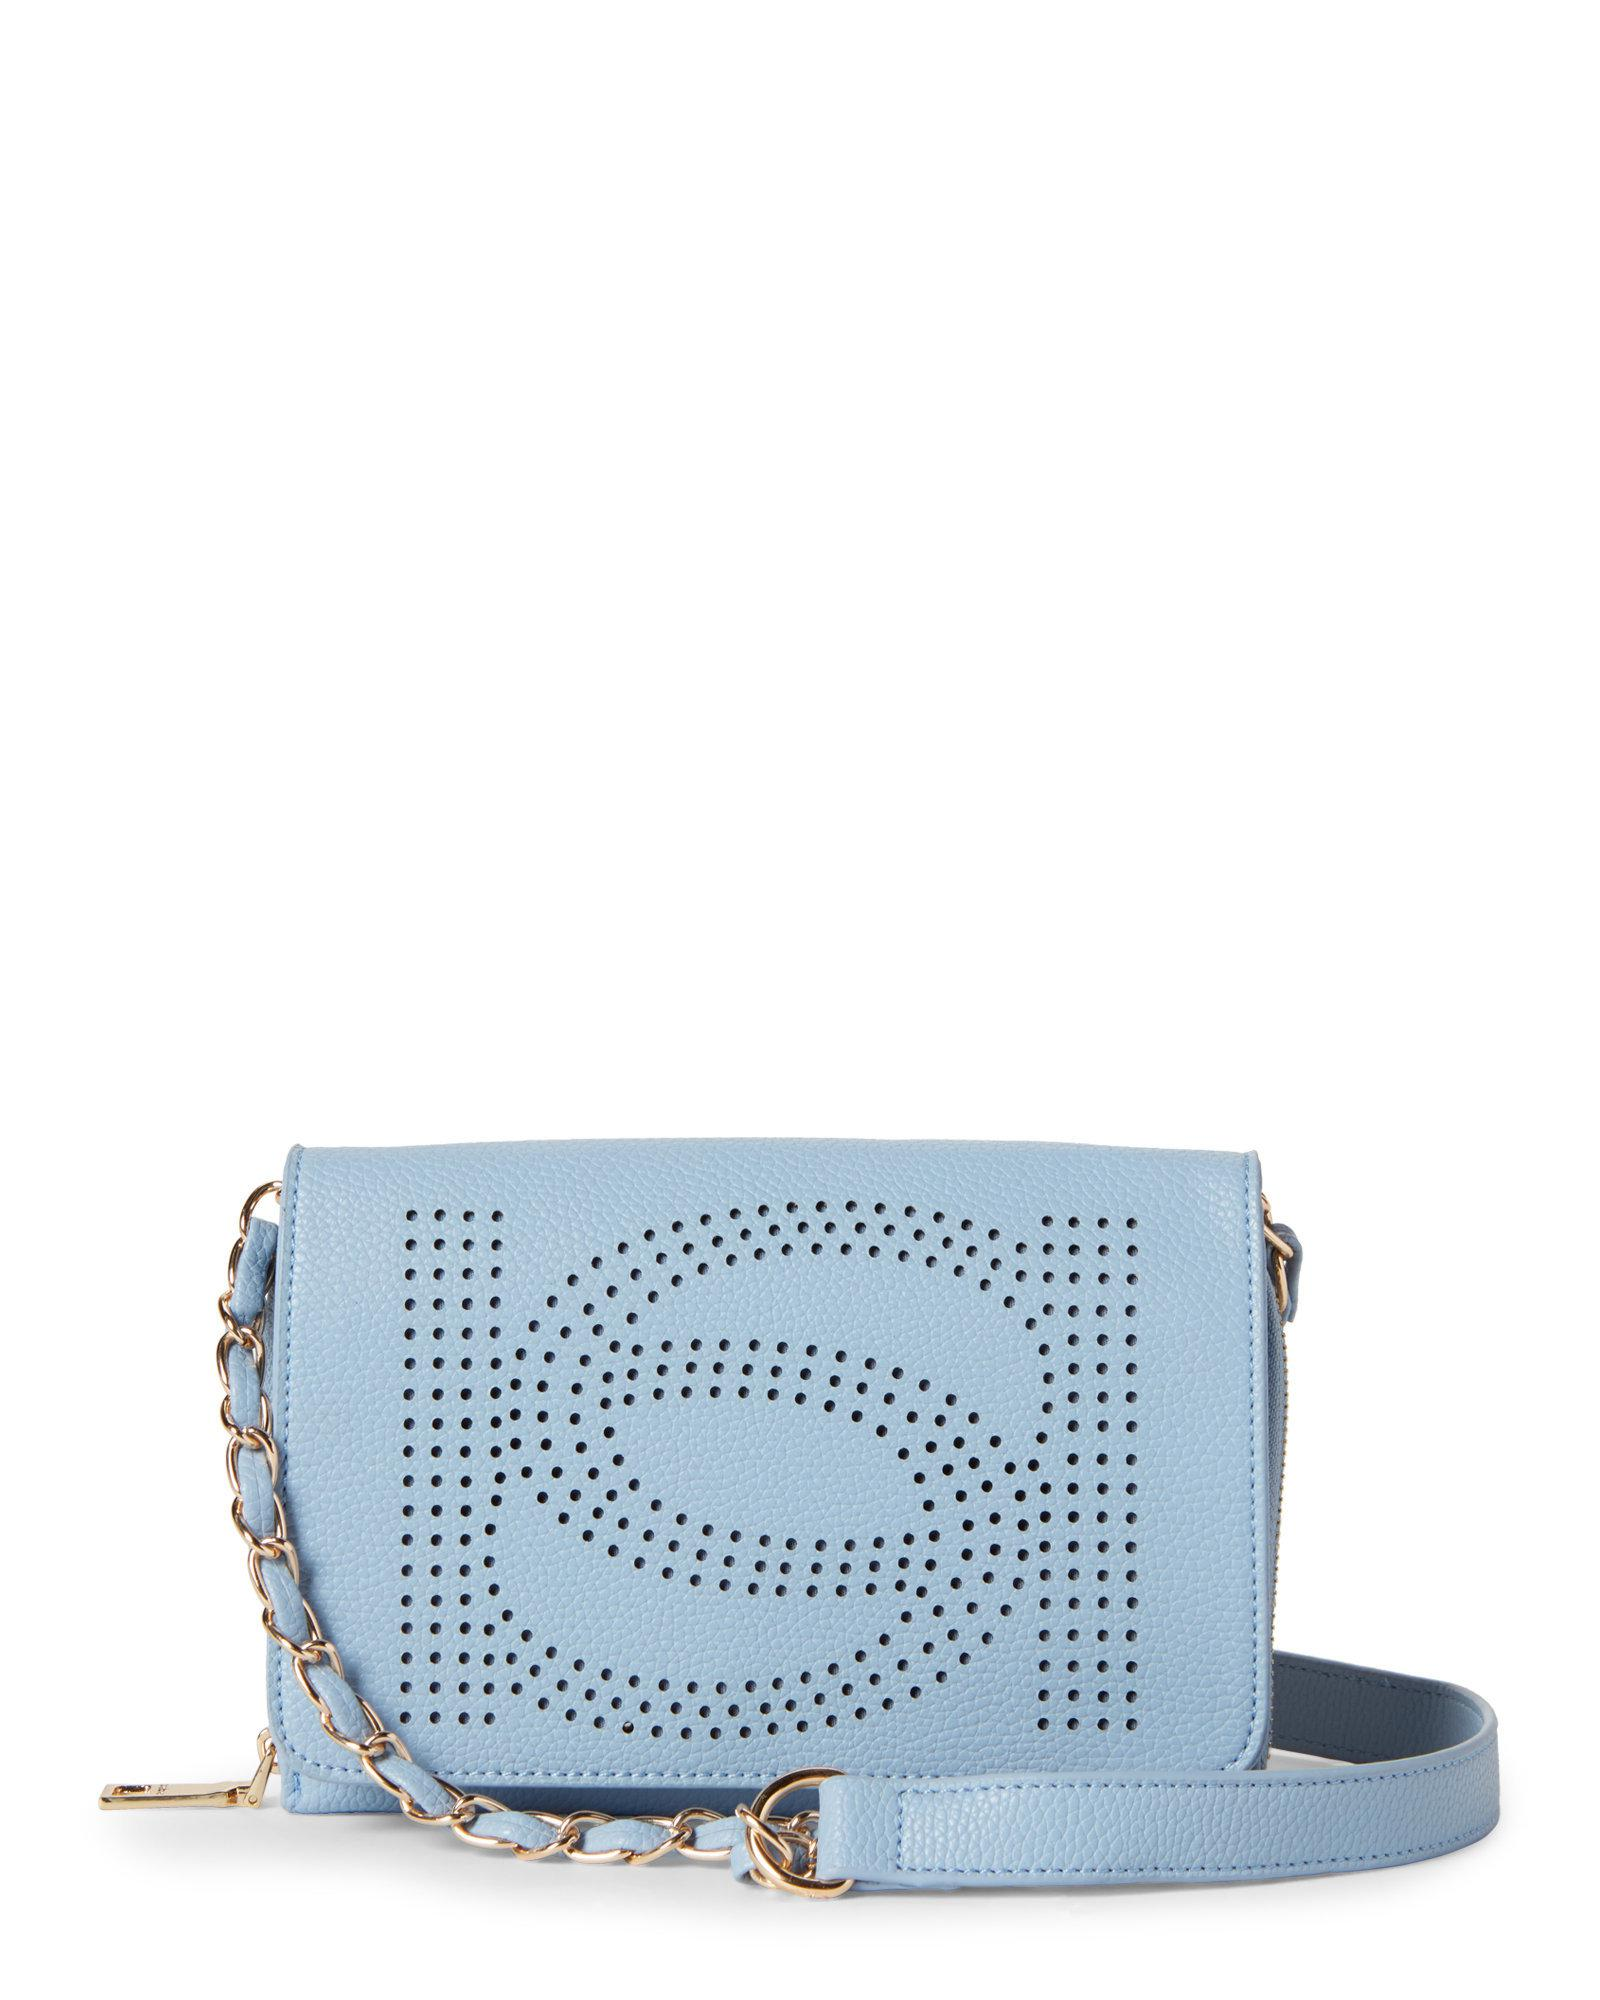 e1995cd4a6 Bebe Holly Perforated Logo Crossbody in Blue - Lyst